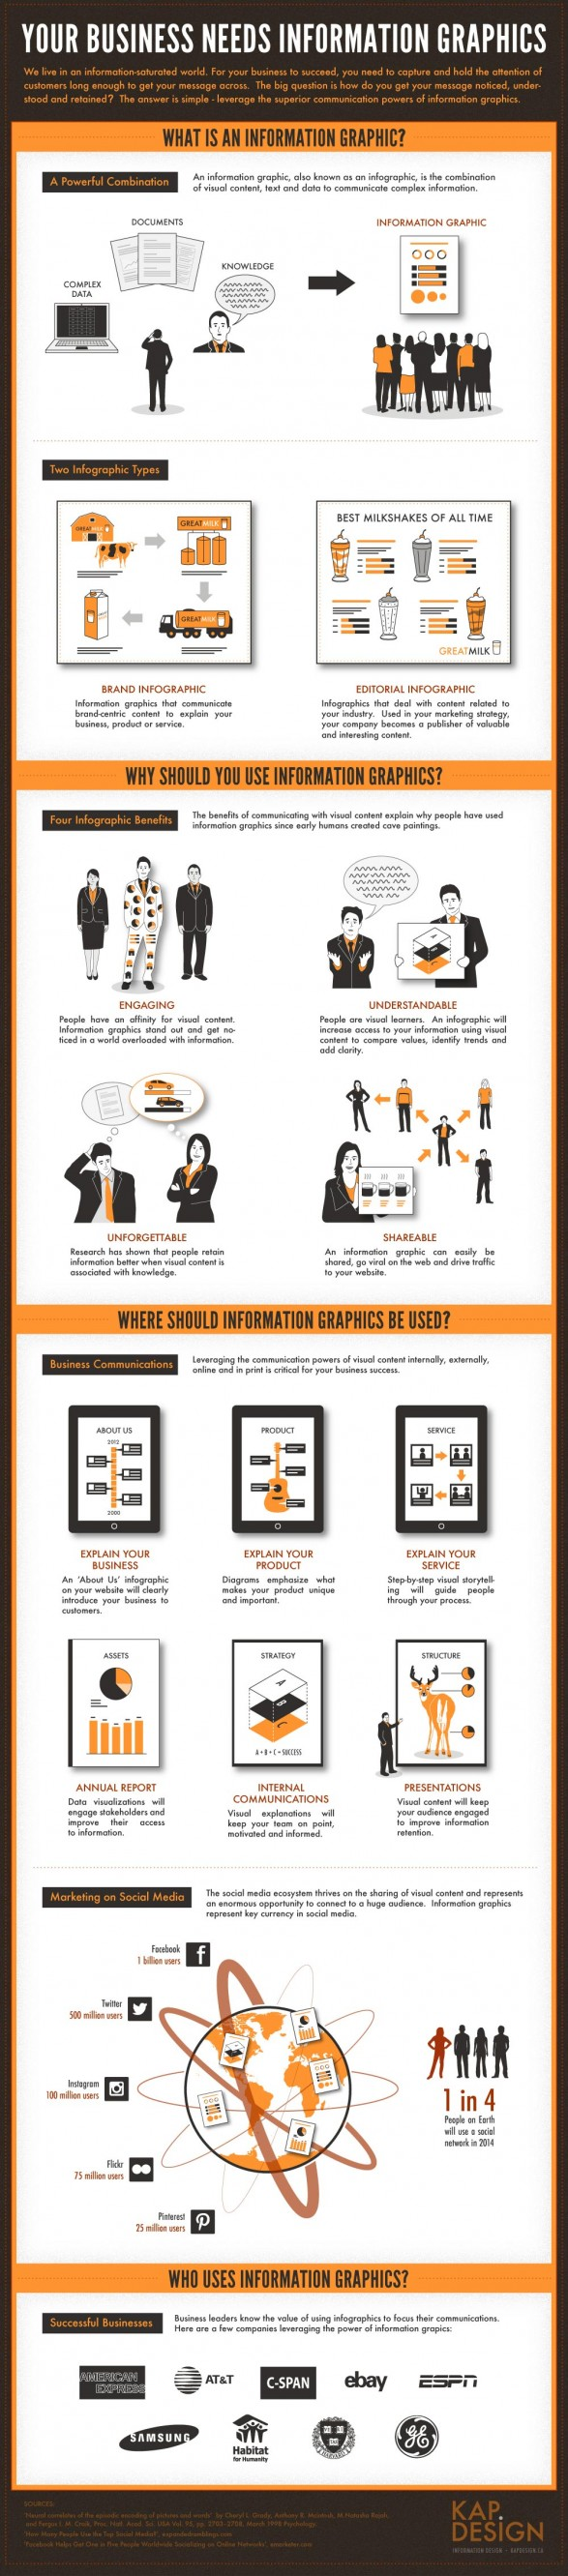 Why Your Business Needs an Infographics ?